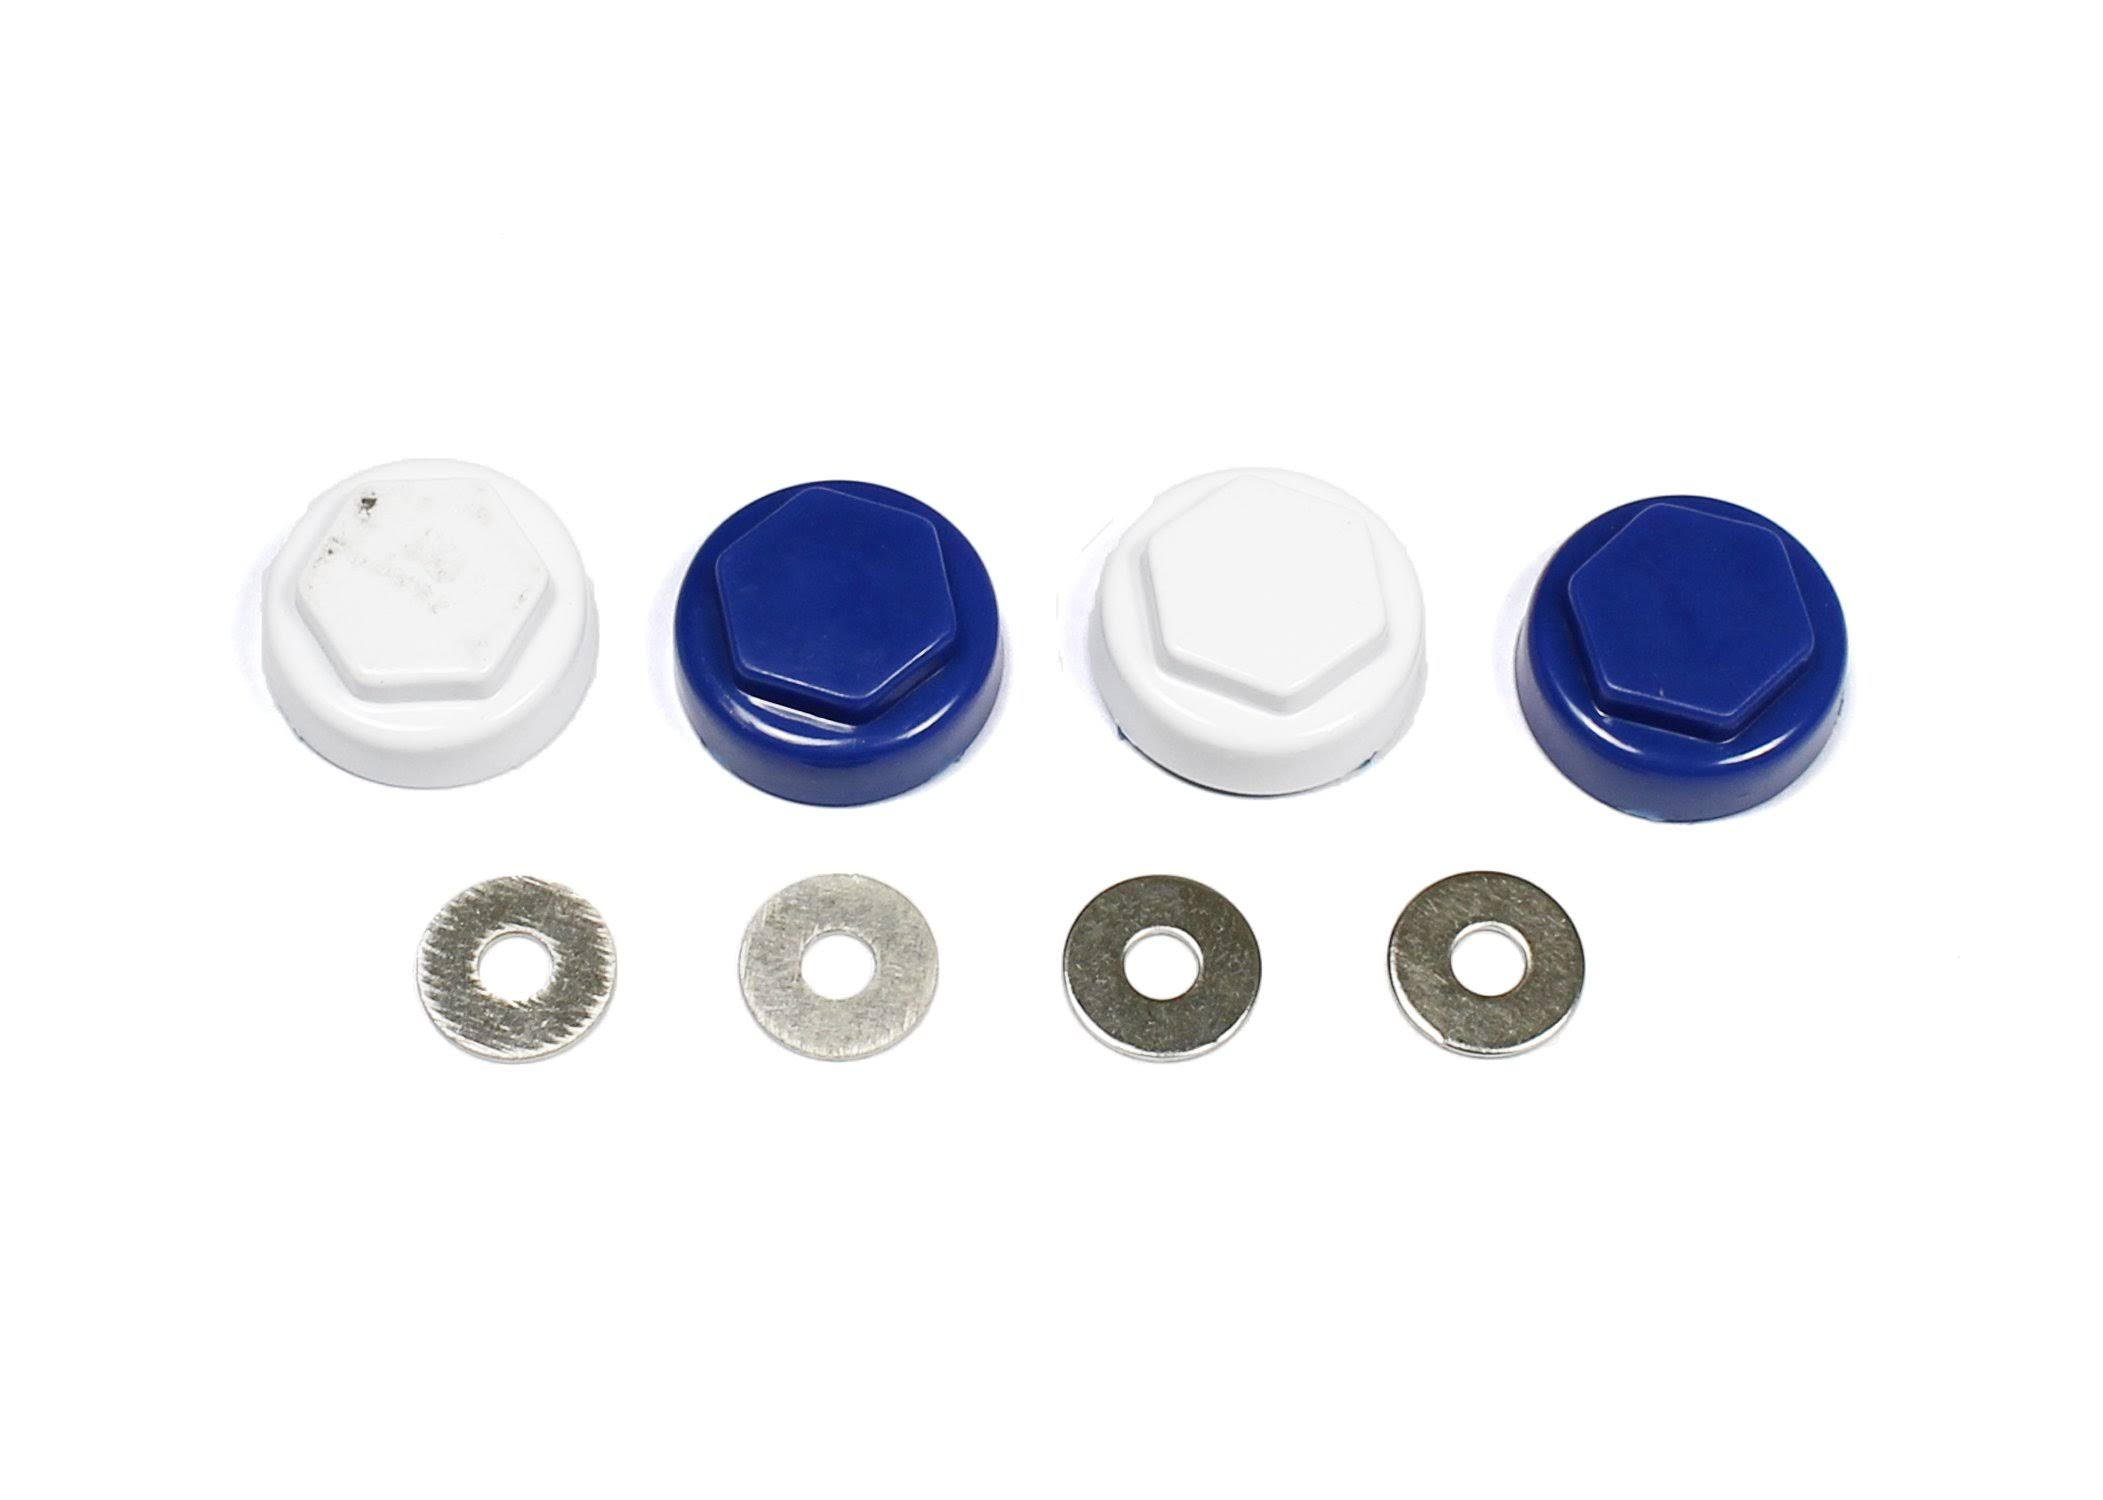 Rage RC Imager 390 Prop Nut Assembly (4) RGR4208